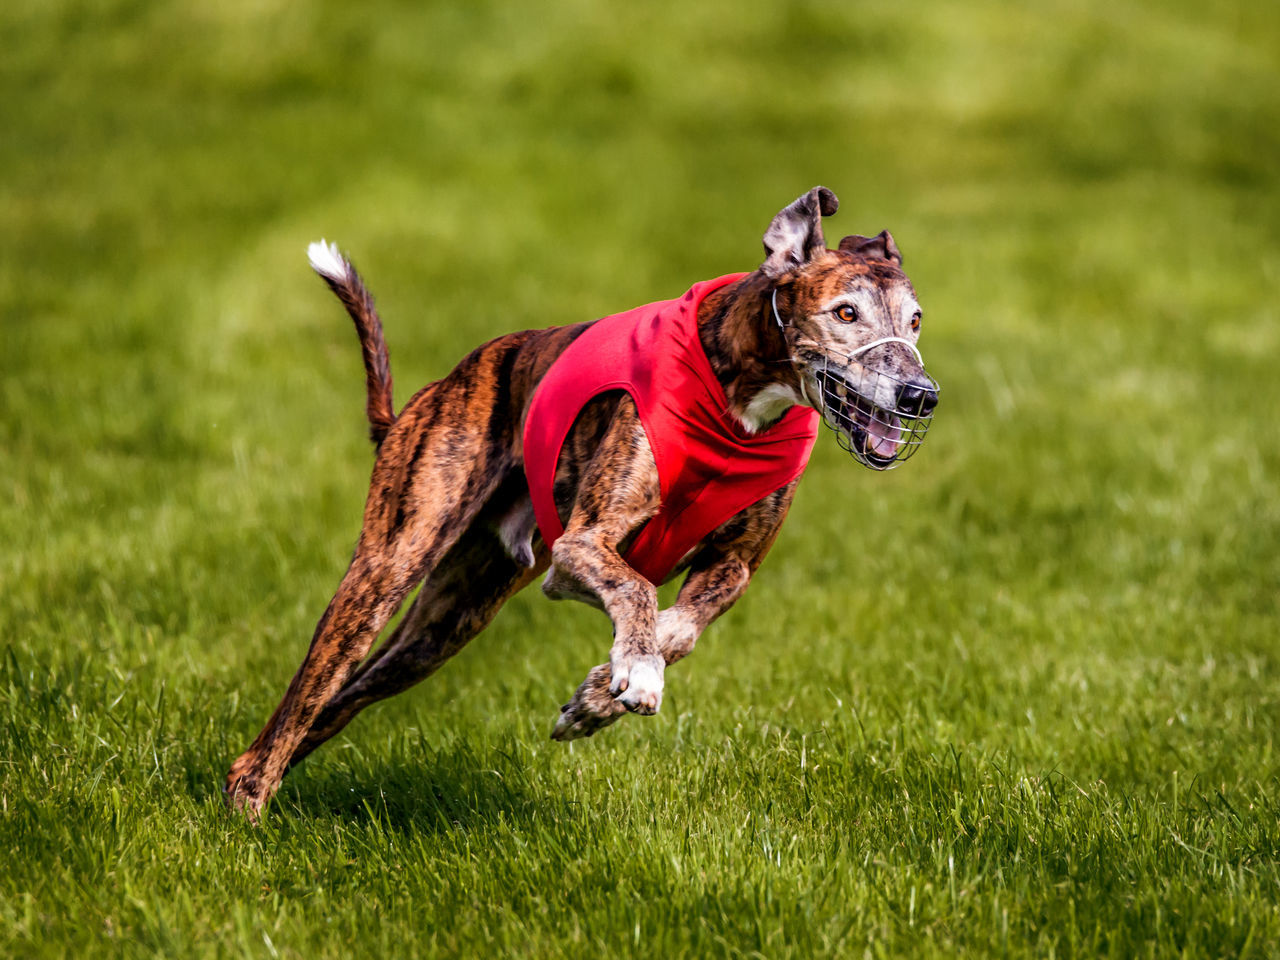 Animal Animal Themes Coursing Dog Grass Grayhound Racing No People One Animal